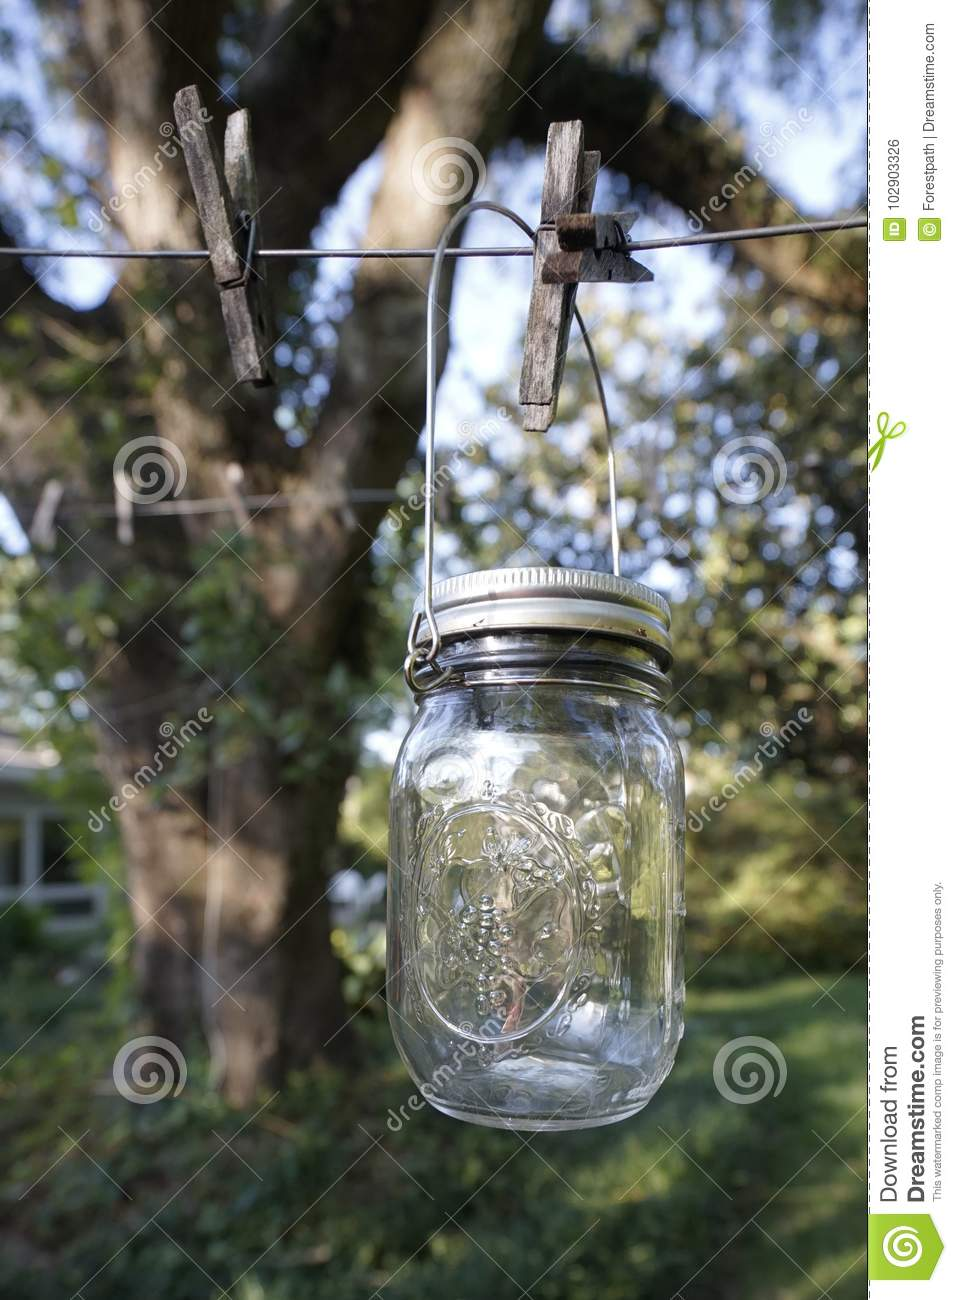 Vintage Canning Jar Outdoors On Clothesline Stock Photo - Image of ...